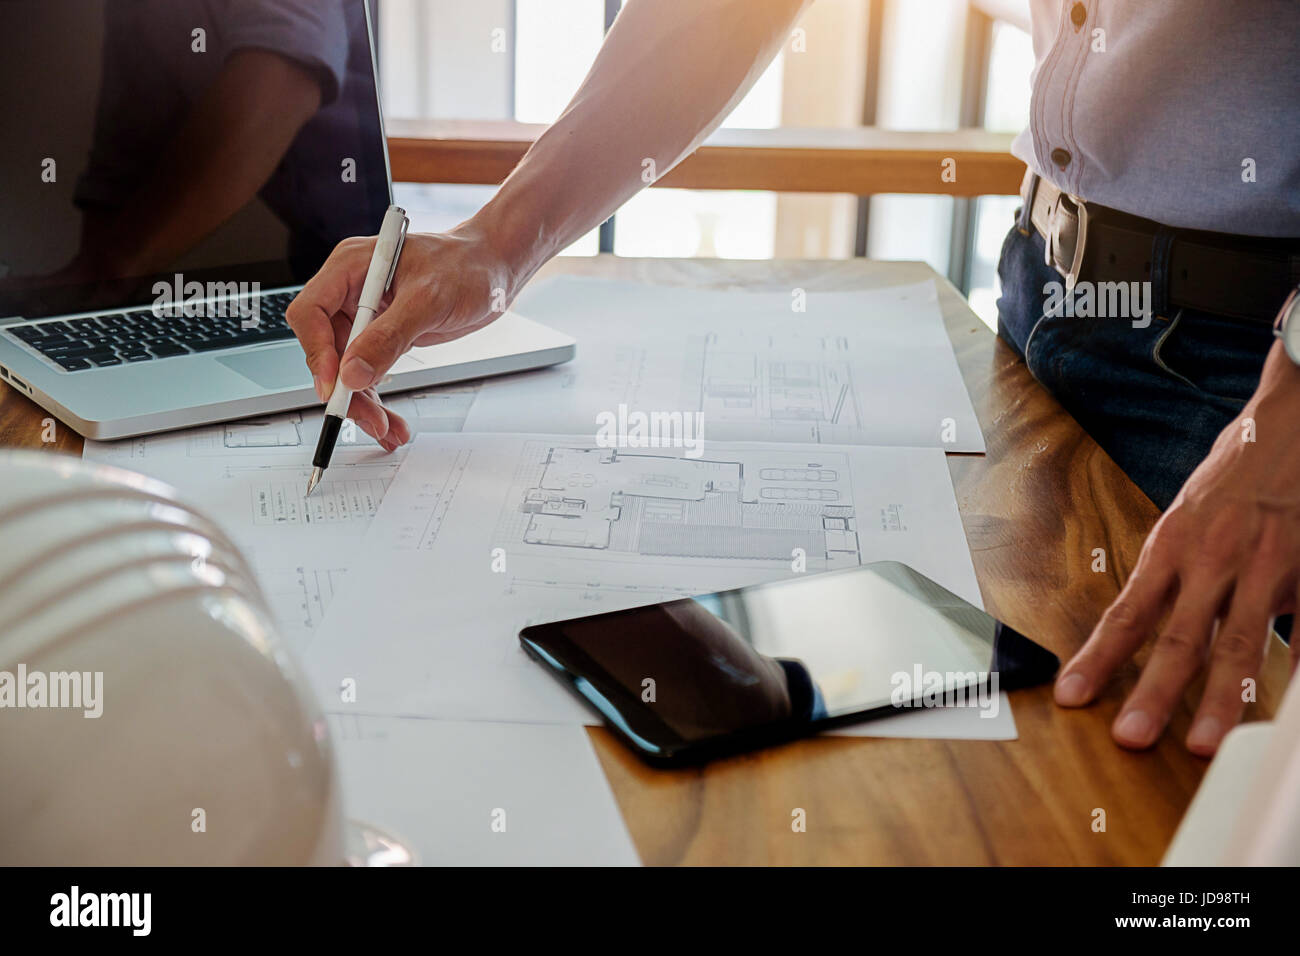 Architects engineer discussing at the table with blueprint - Closeup on hands and project print. - Stock Image